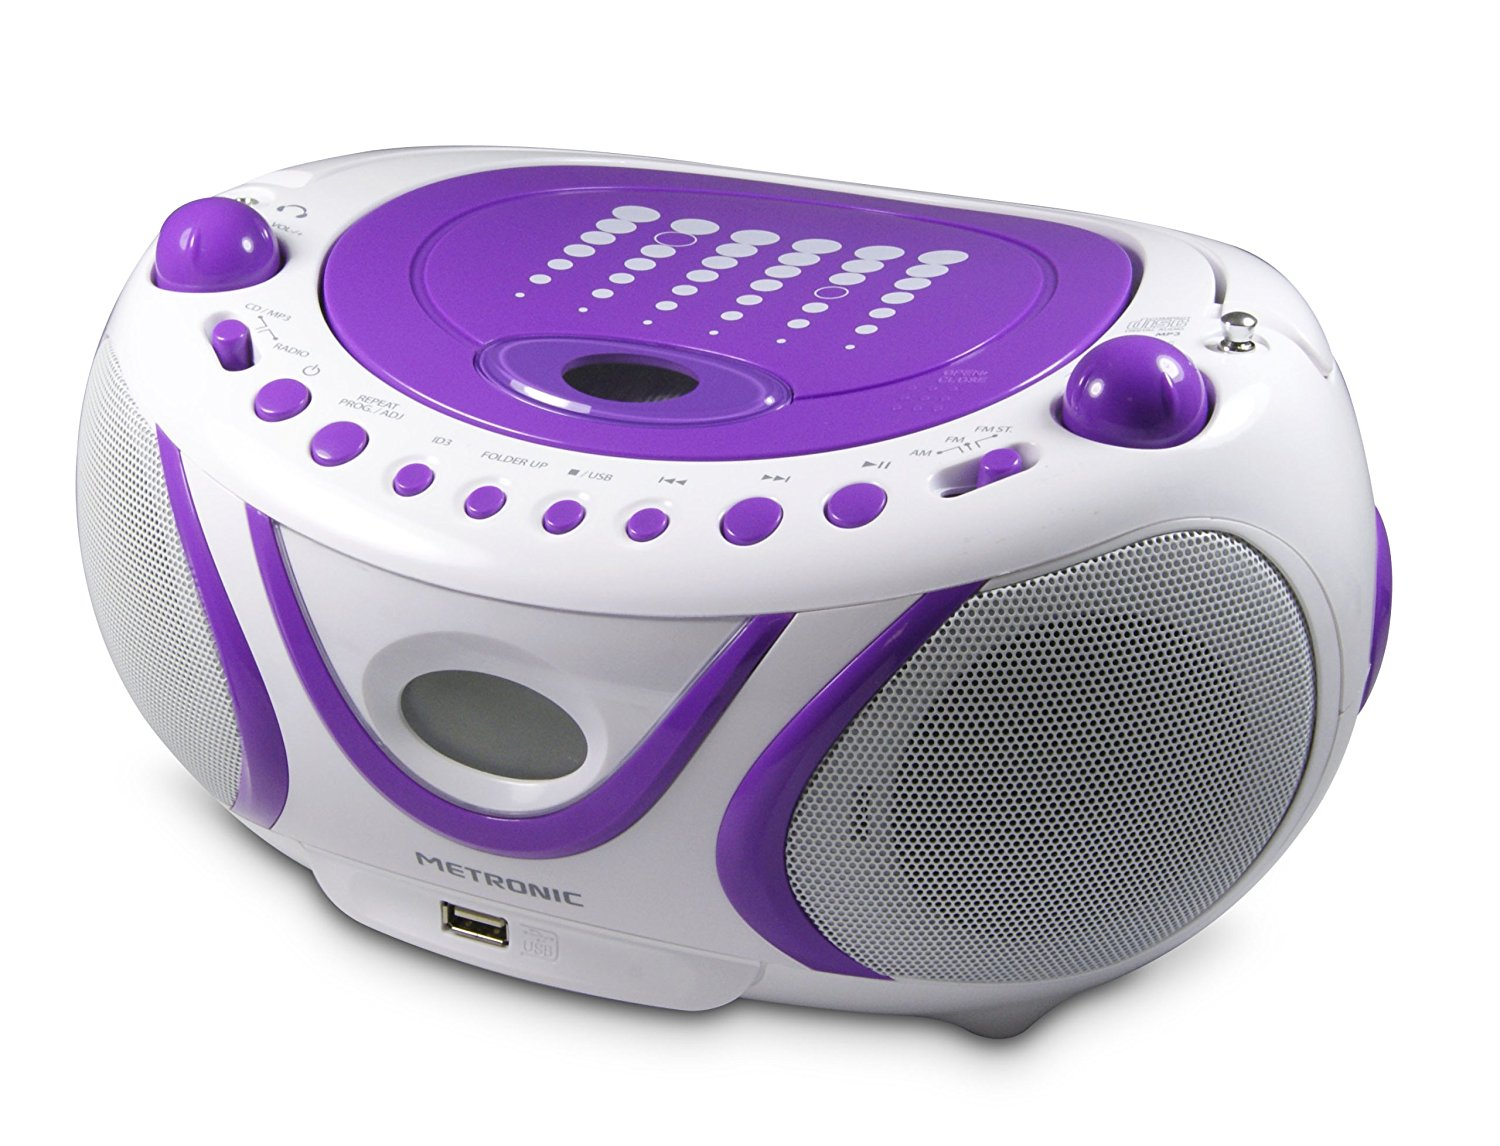 Metronic POP Radiorekorder CD-Player mit MP3 Wiedergabe )